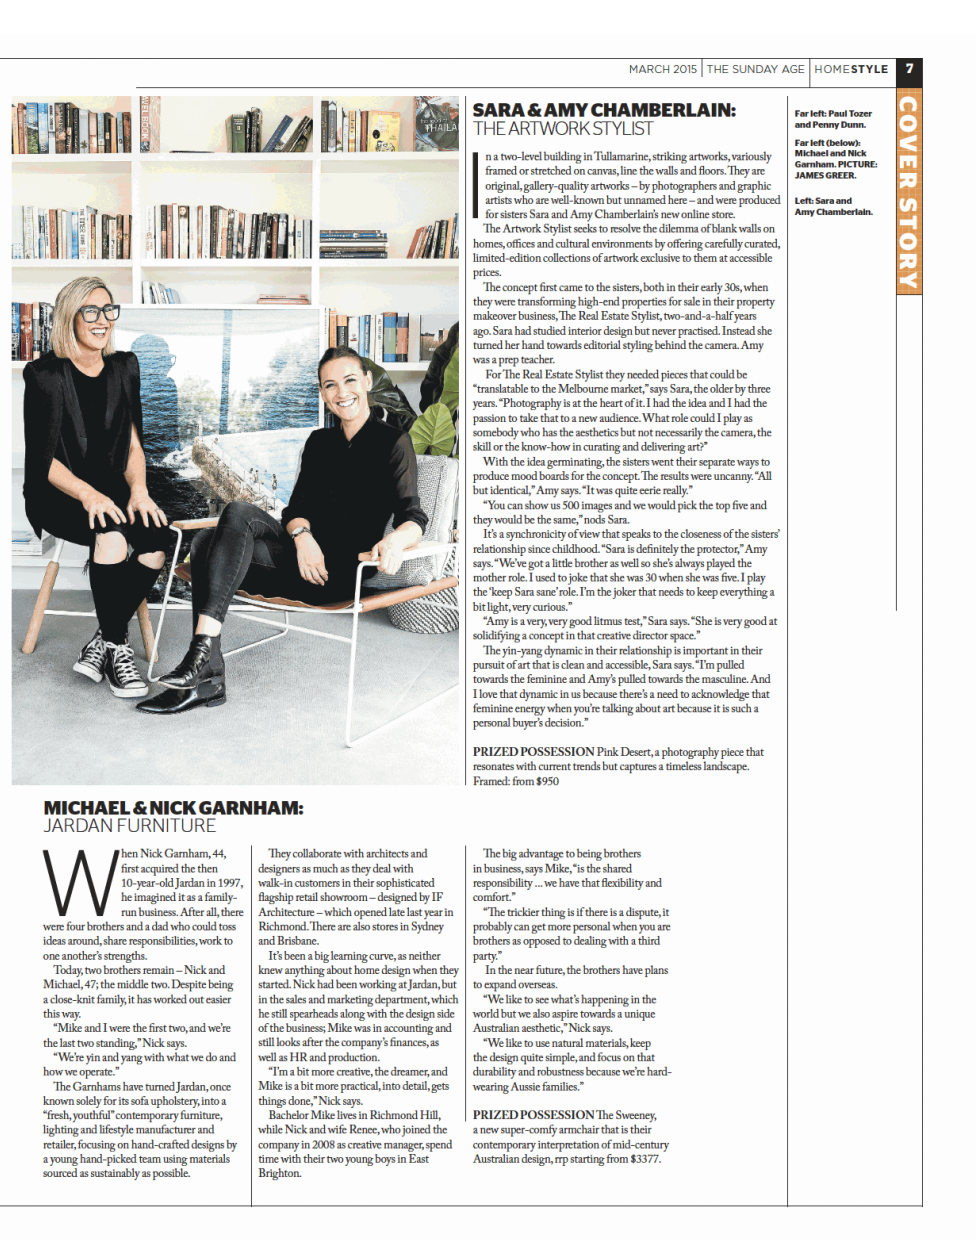 Home Style Magazine - The Age  MARCH 2015